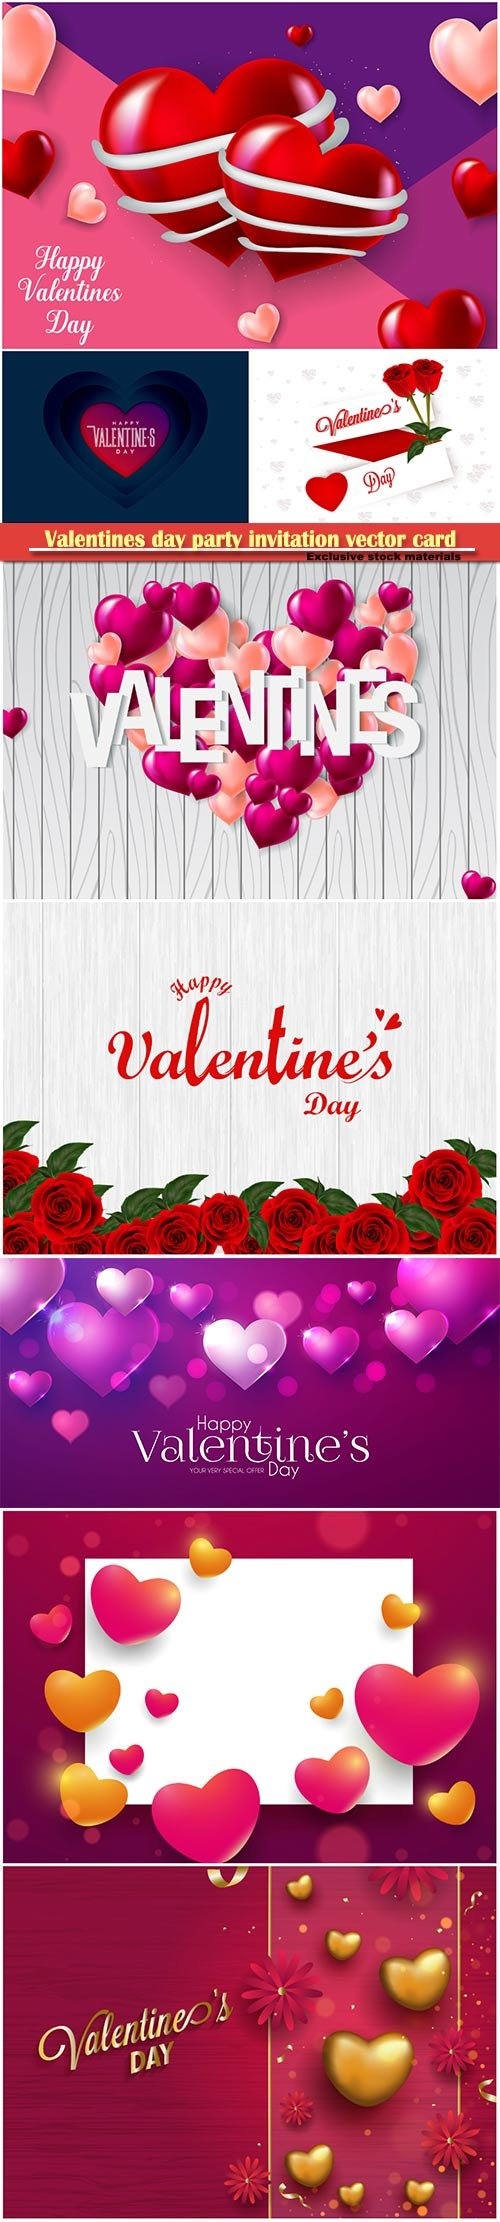 Valentines day party invitation vector card # 45